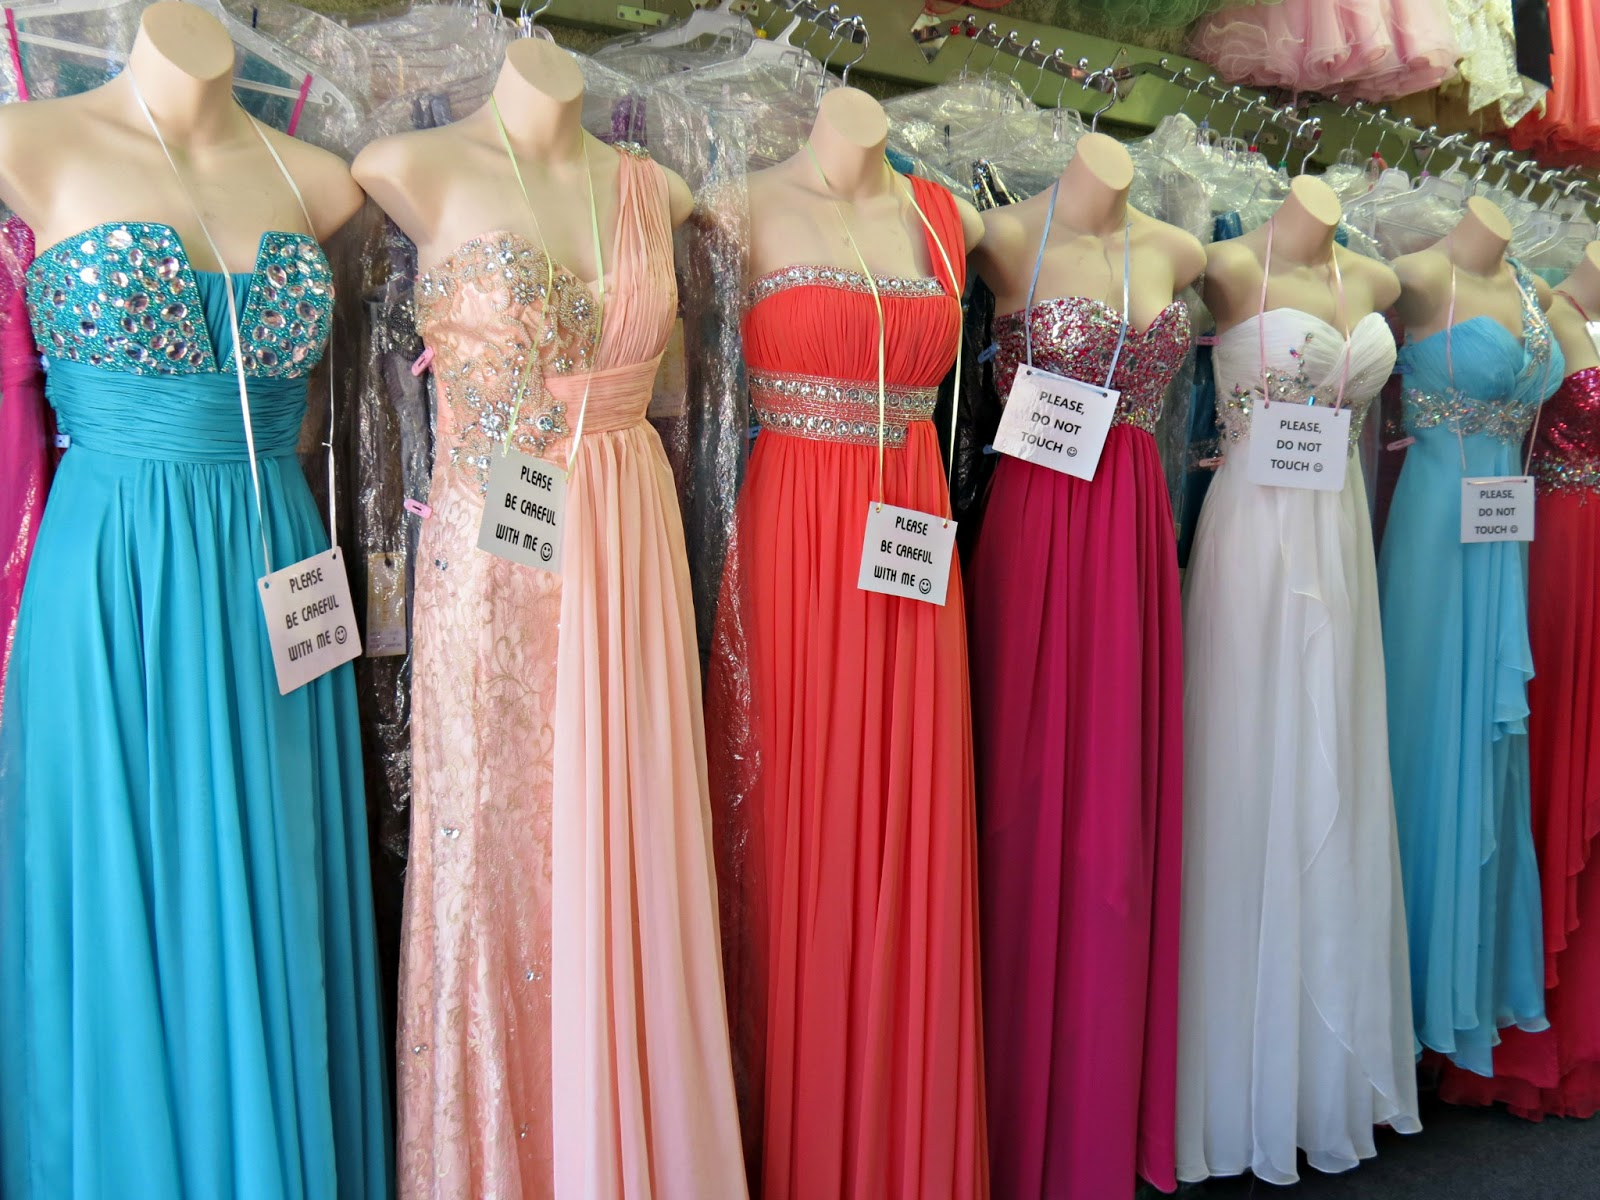 Best stores in la for prom dresses